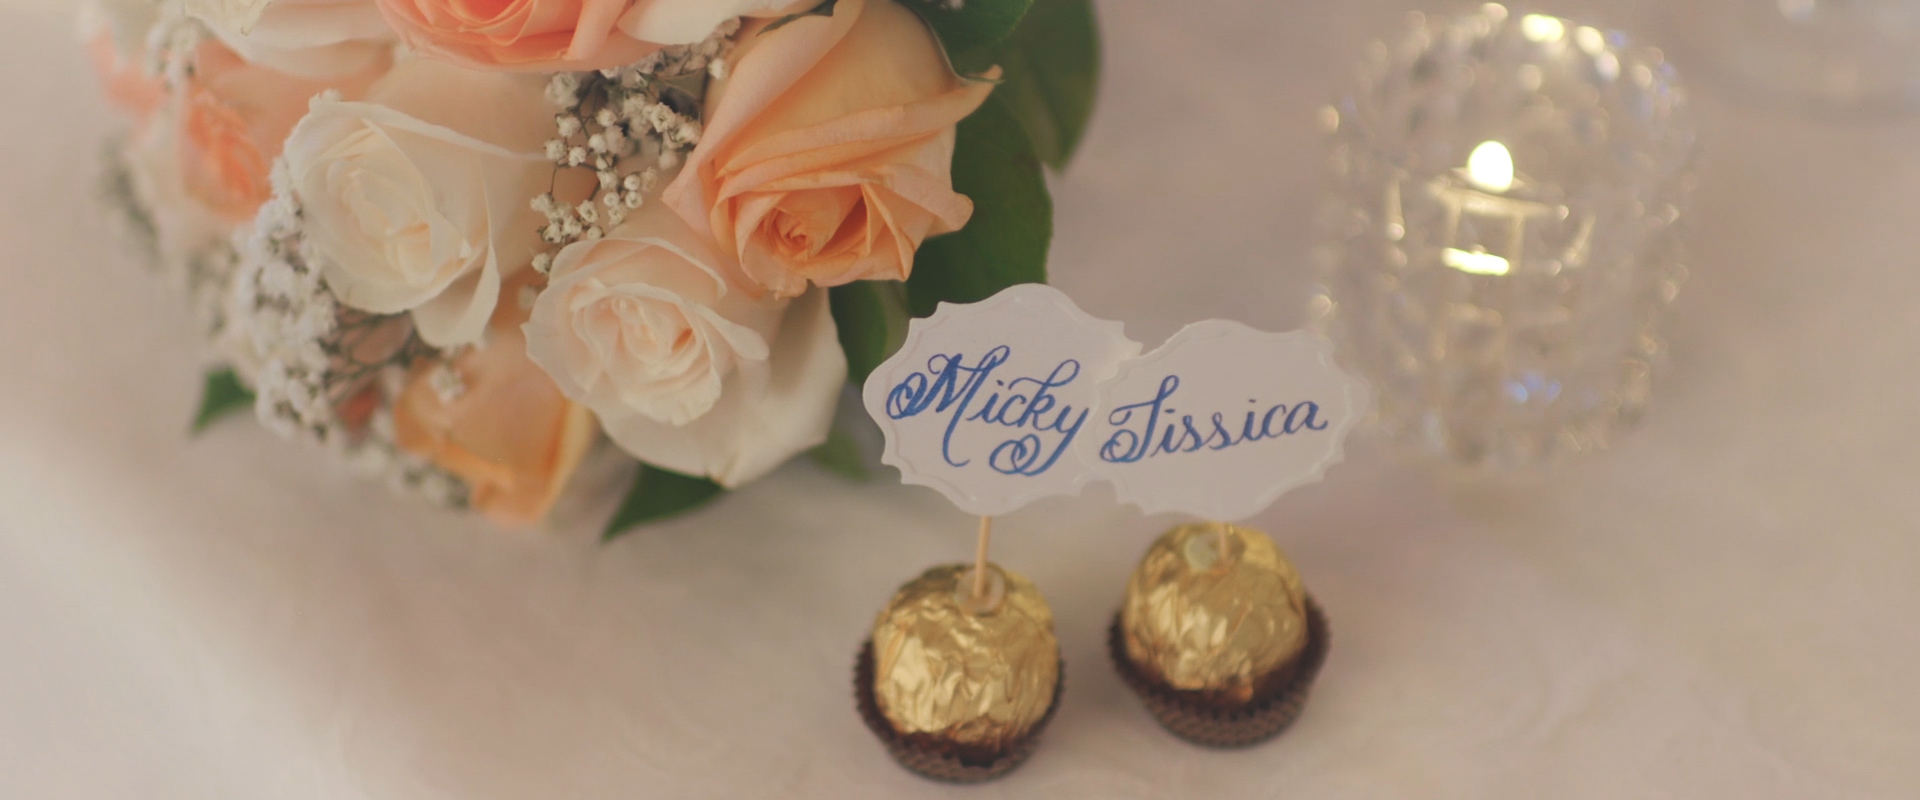 An image of a bride and grooms table decor at their reception hall; taken from a Toronto Wedding Video